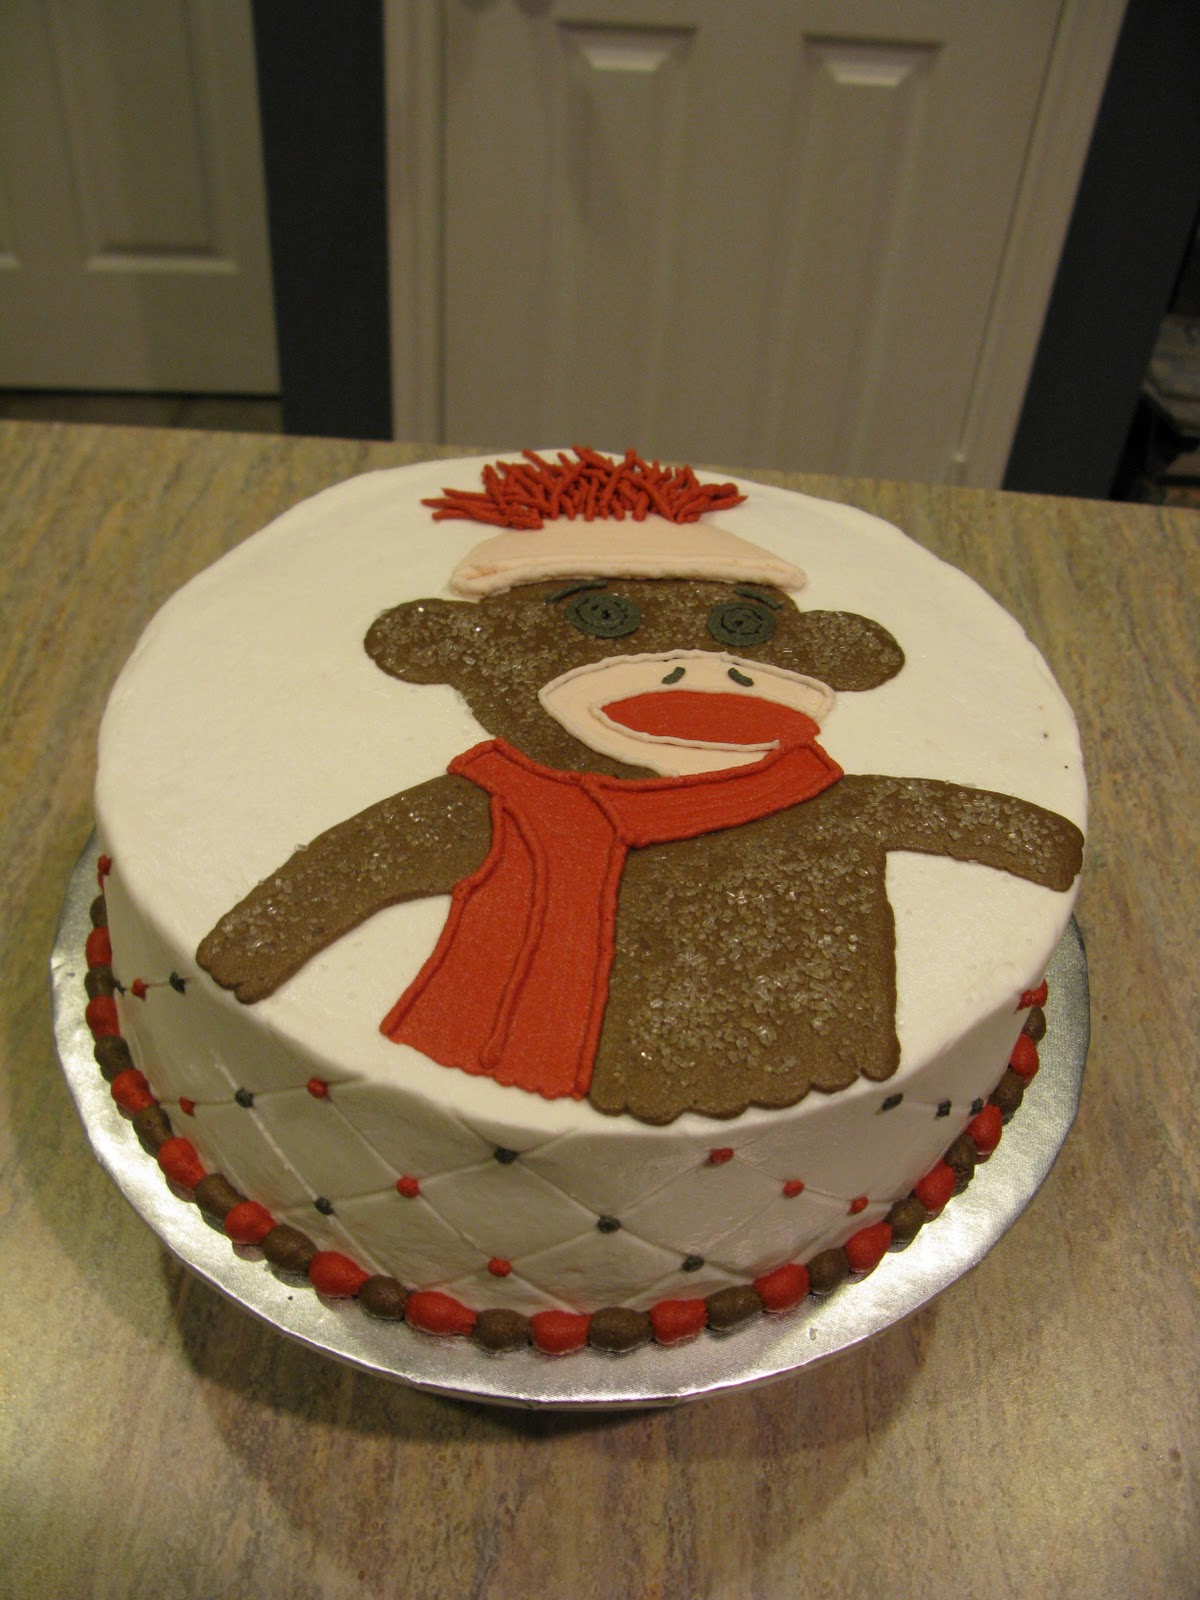 A counselor 39 s confections sock monkey themed baby shower cake - Baby shower cakes monkey theme ...